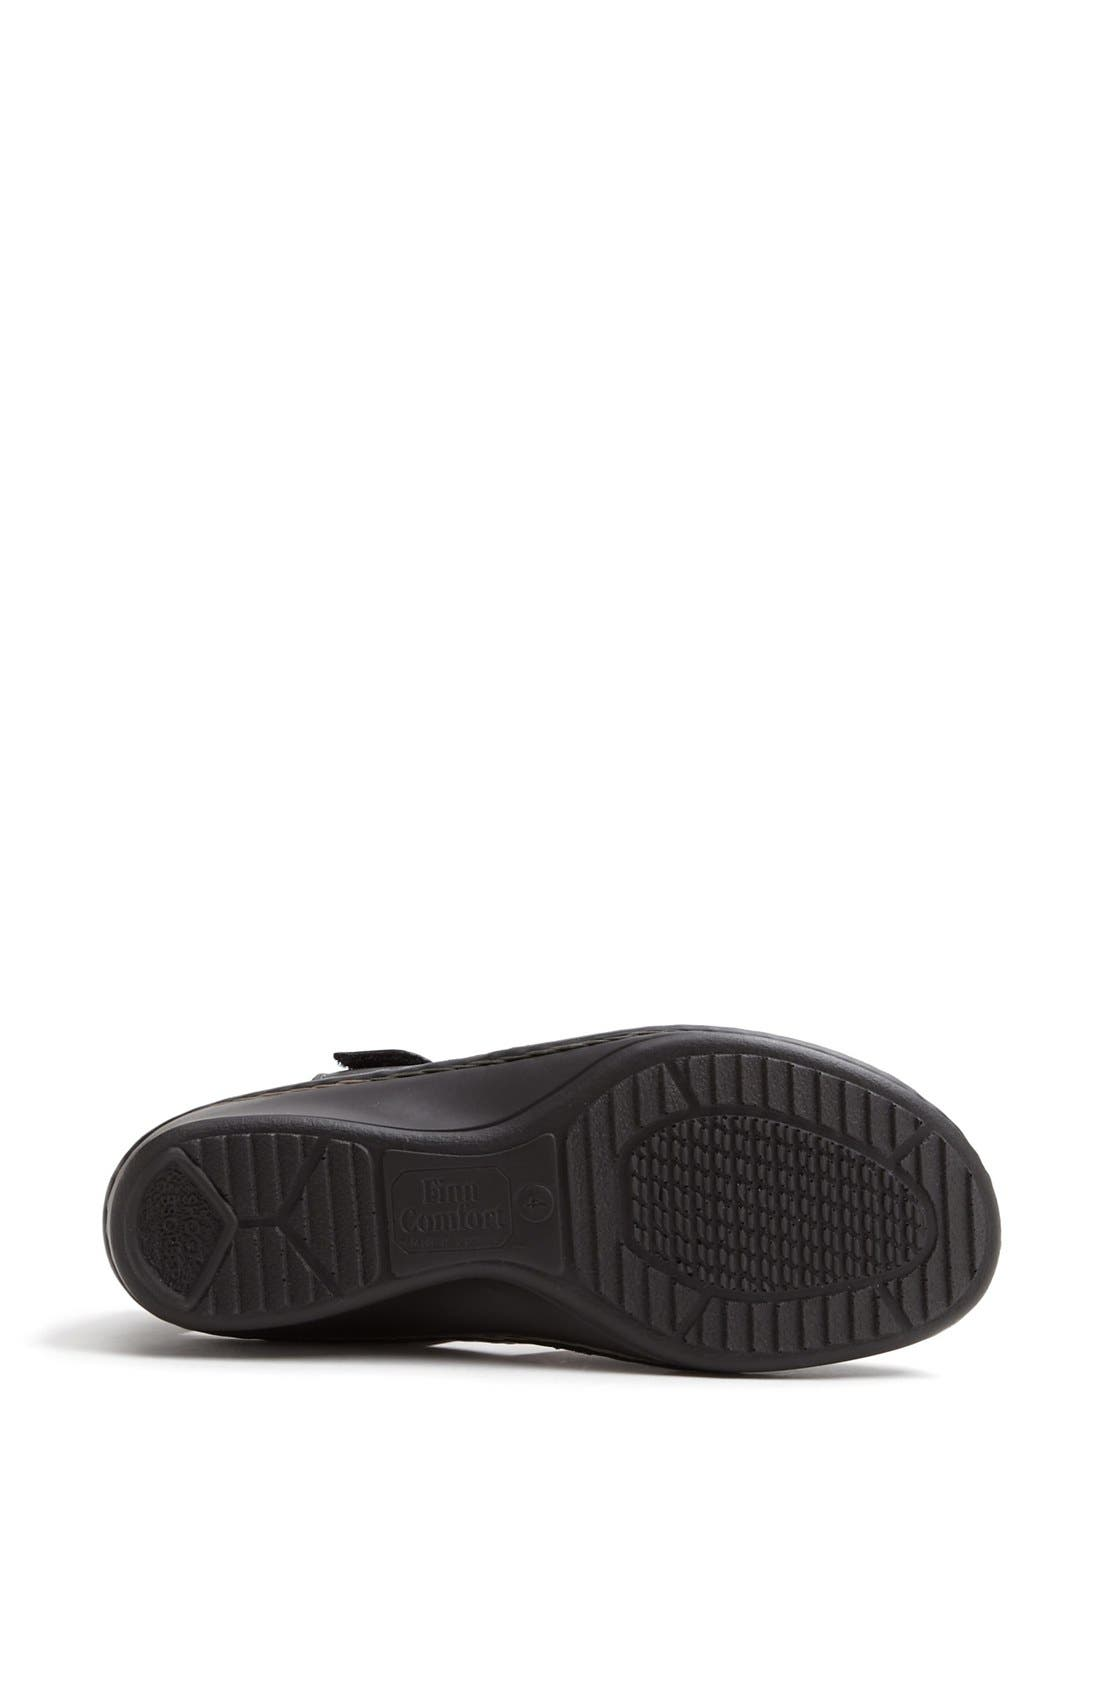 'Funnen' Sandal,                             Alternate thumbnail 4, color,                             Black